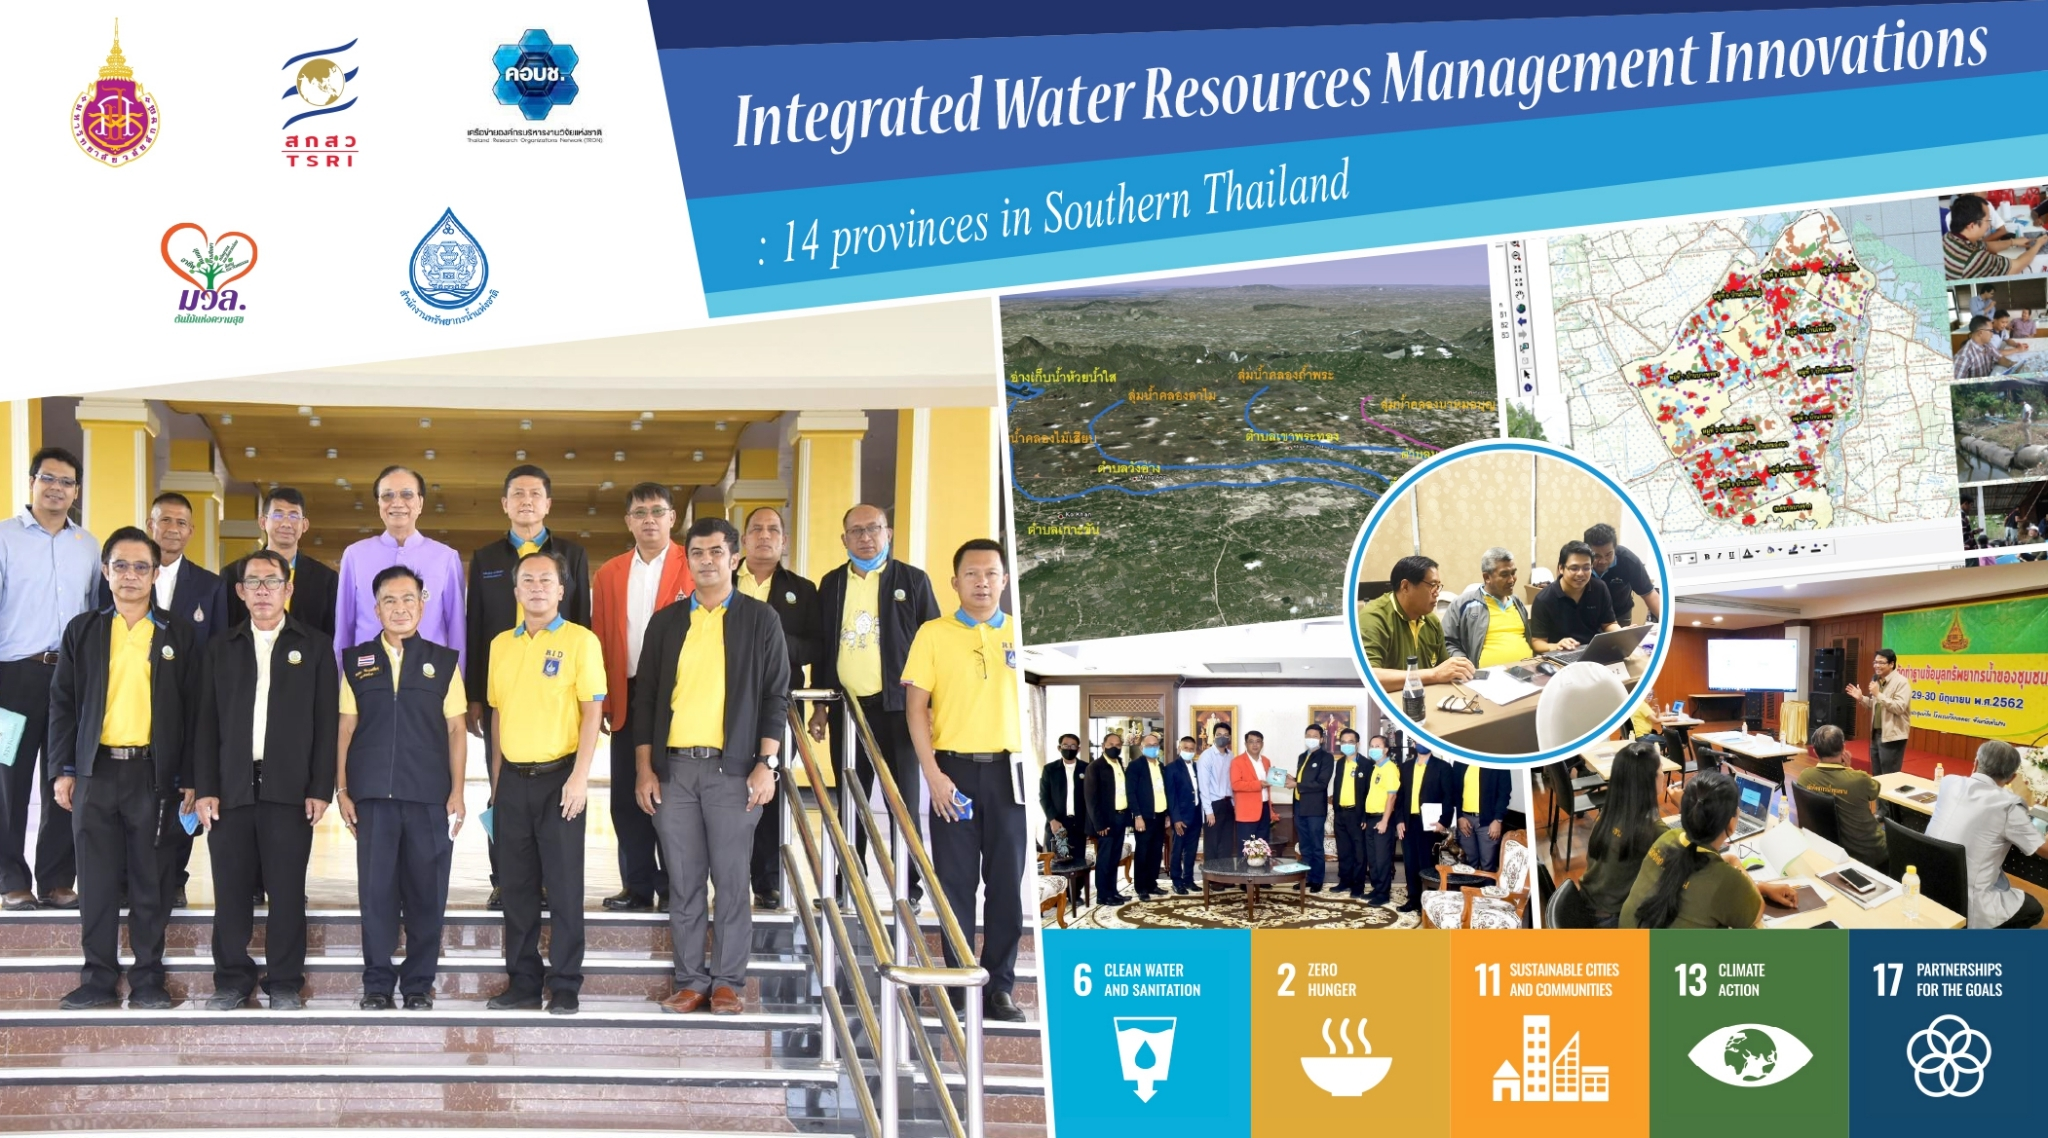 Integrated Water Resources Management Innovations: 14 provinces in Southern Thailand